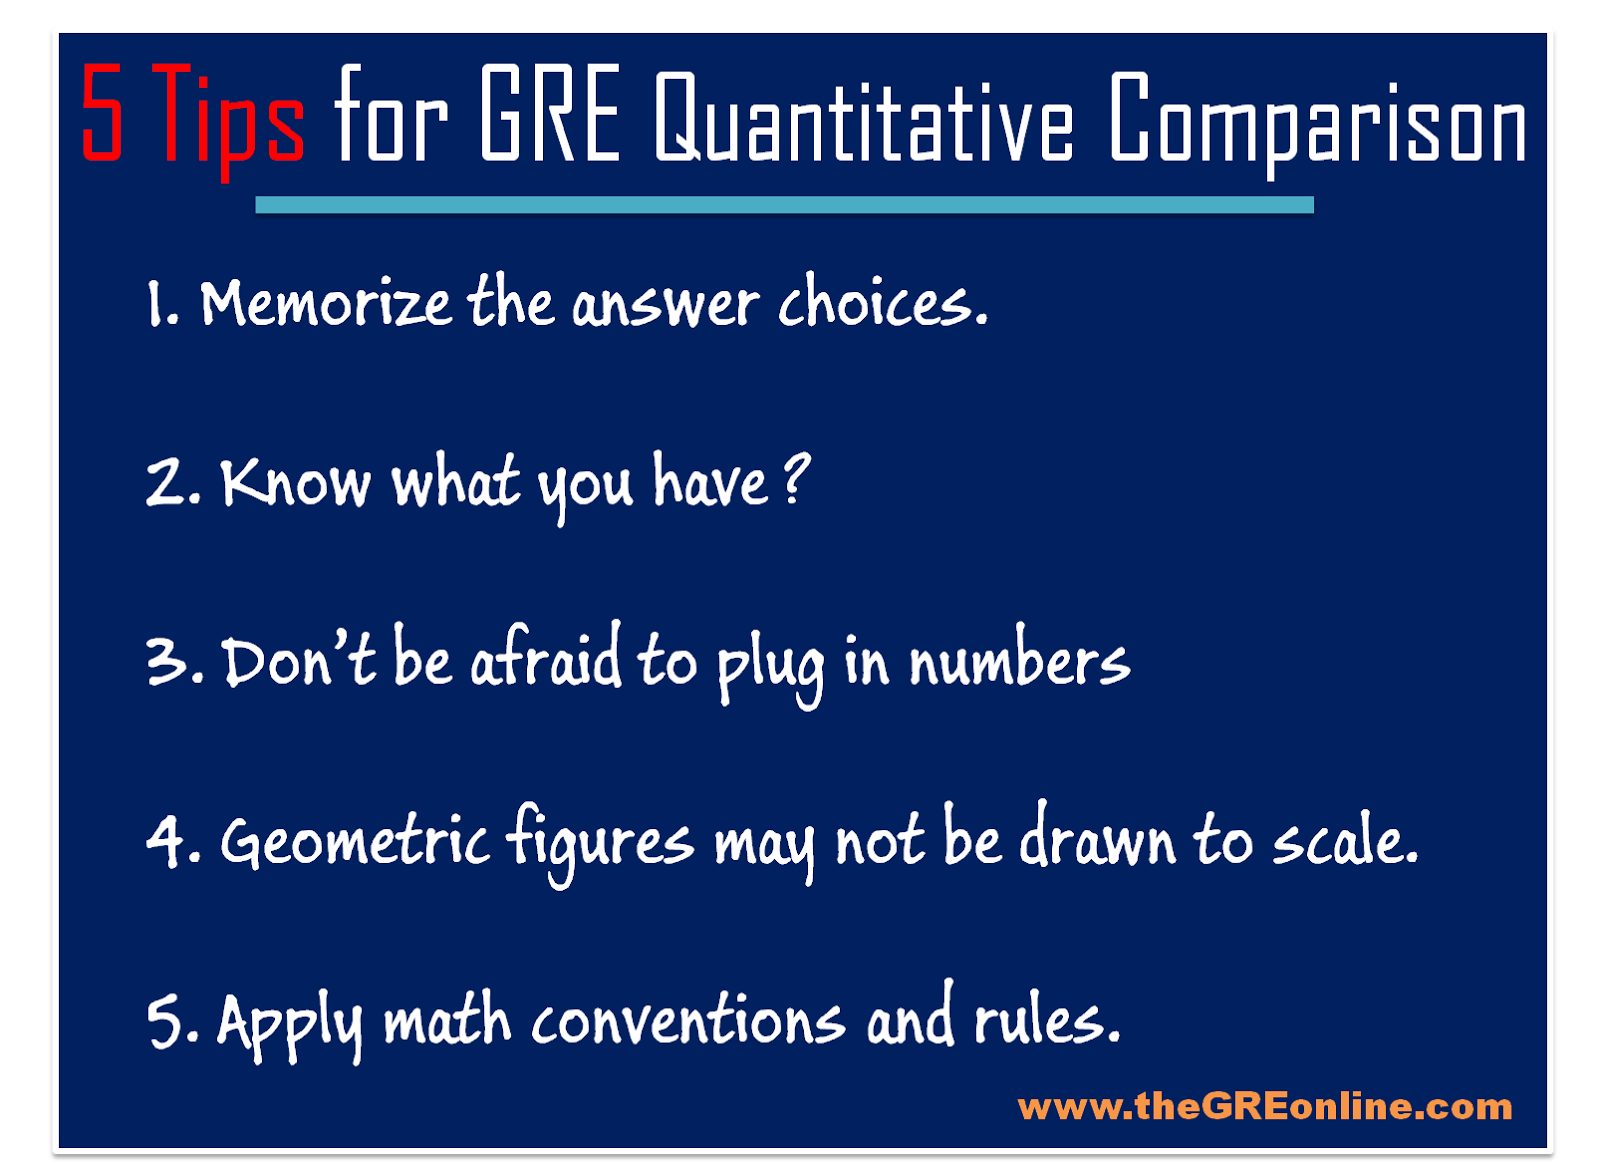 essays for gre You should also practice writing a few essays, under timed or untimed conditions, to gain familiarity with how to analyze the types of essay prompts used on the gre, and to gain an understanding of what sort of essay length and argument complexity to strive for on test day.